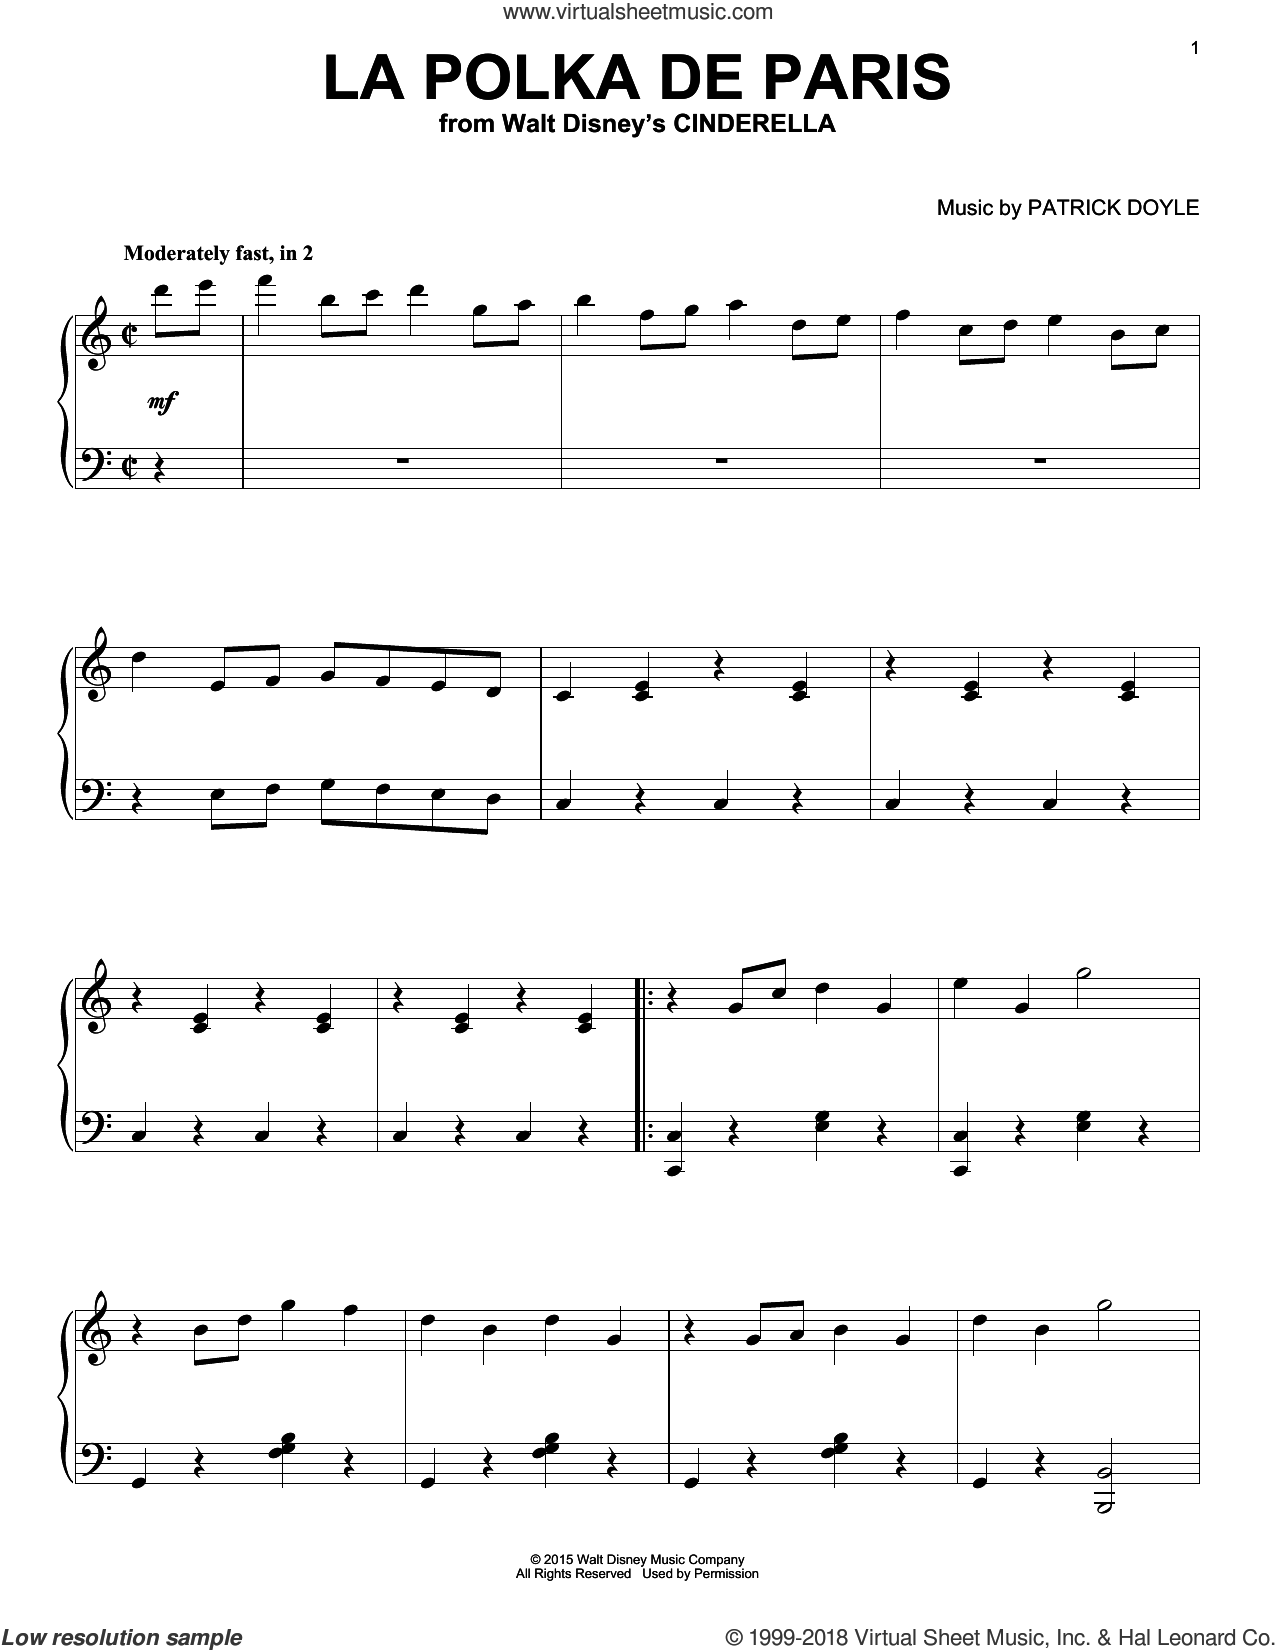 La Polka De Paris sheet music for piano solo by Patrick Doyle, intermediate skill level